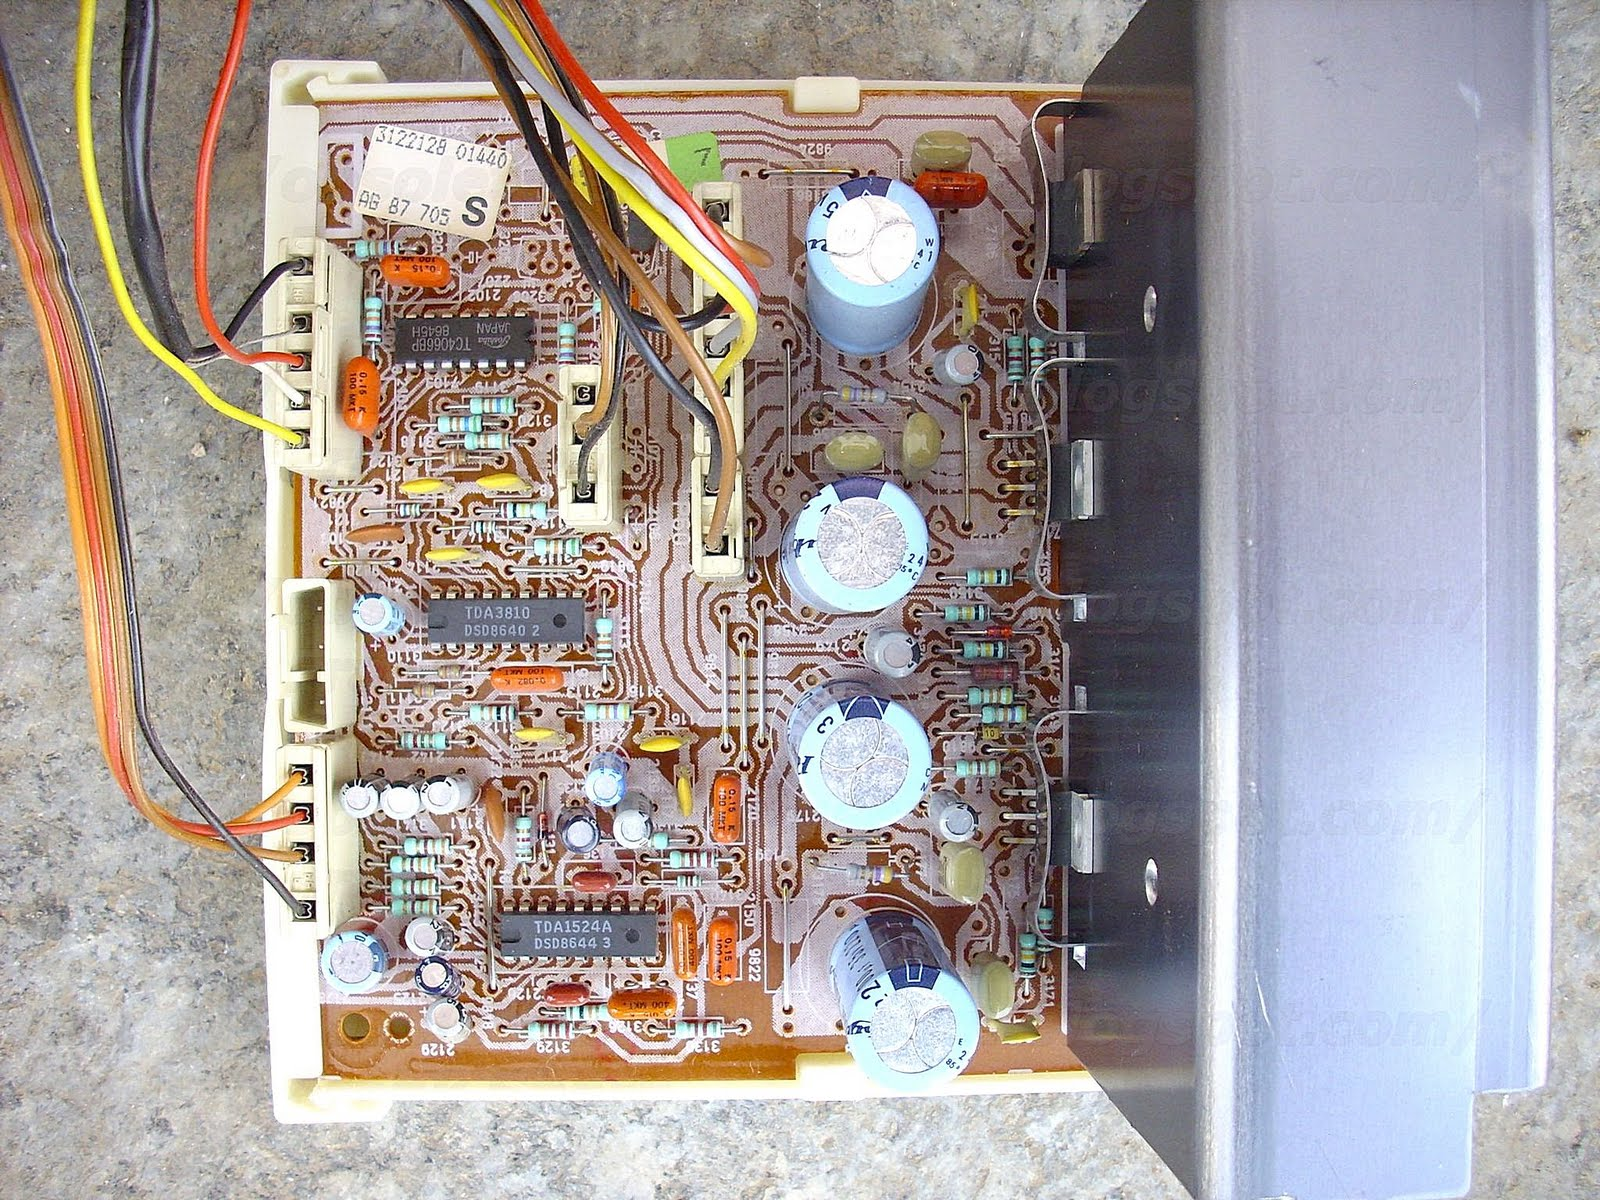 Obsolete Technology Tellye Phonola Philips 59ks6509 08r 506 X 331 250 Kb Jpeg How To Wire A Gfci Circuit View 8204 004 04271 Citac Control Unit With Sab3035 Computer Interface For Tuning And